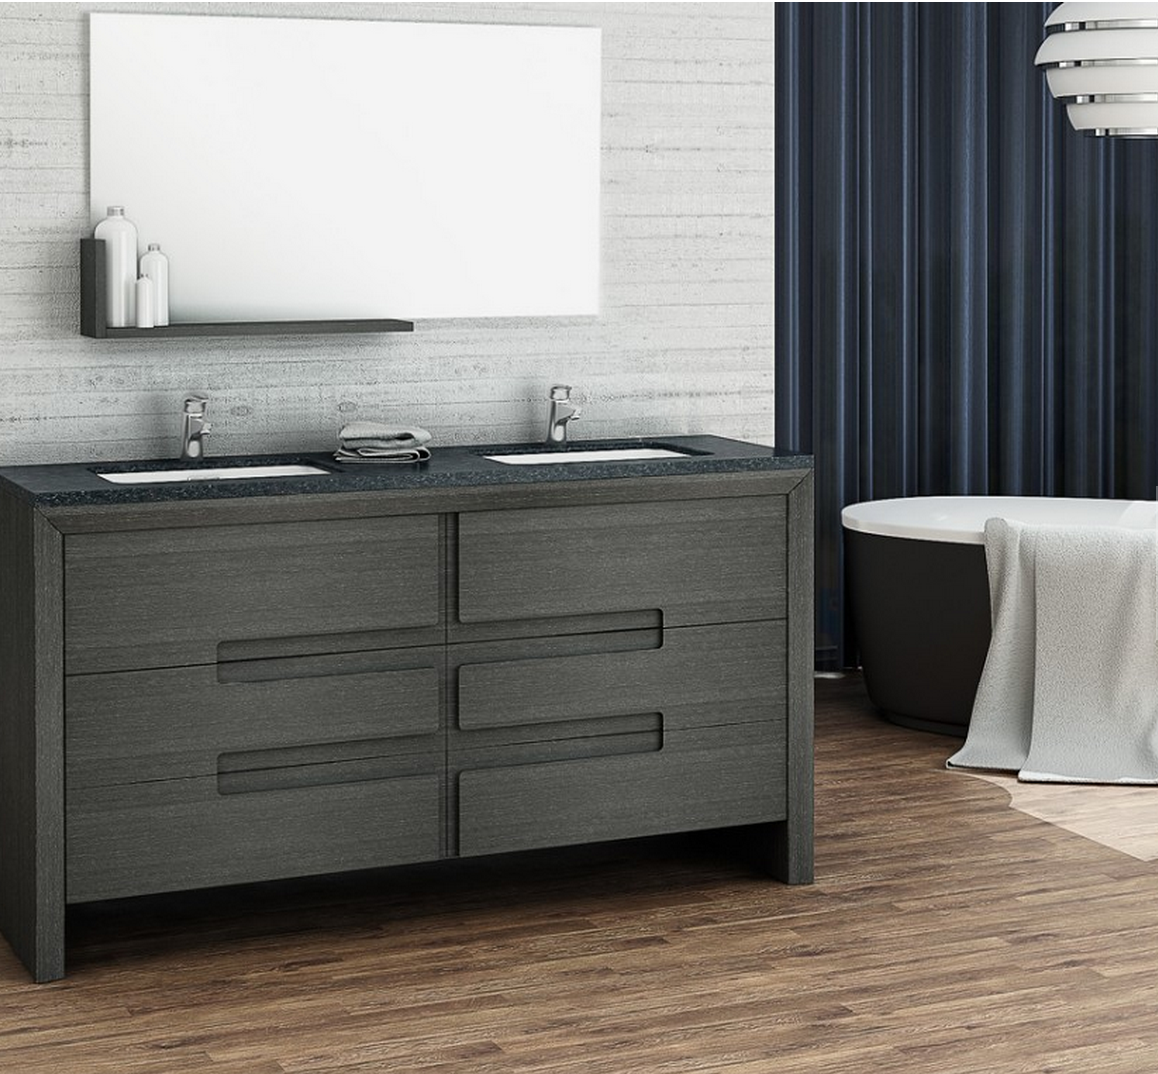 Find Our Bathroom Vanities At Http Ovedecors En Produits